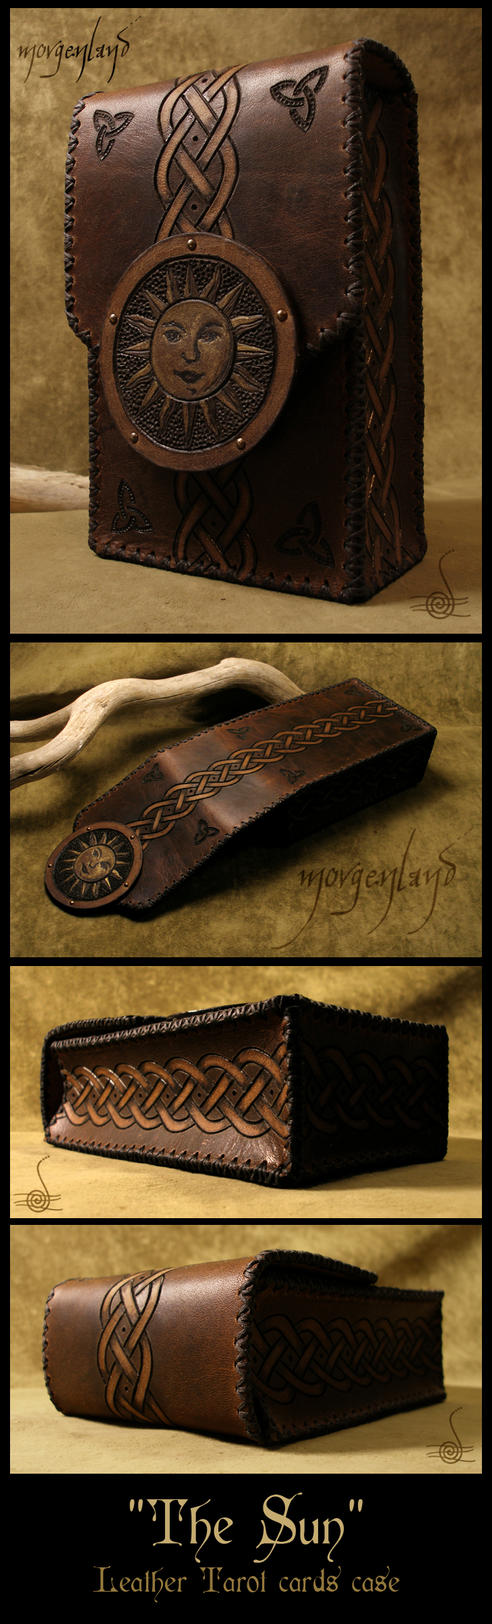 'The Sun' - Leather tarot cards case by morgenland